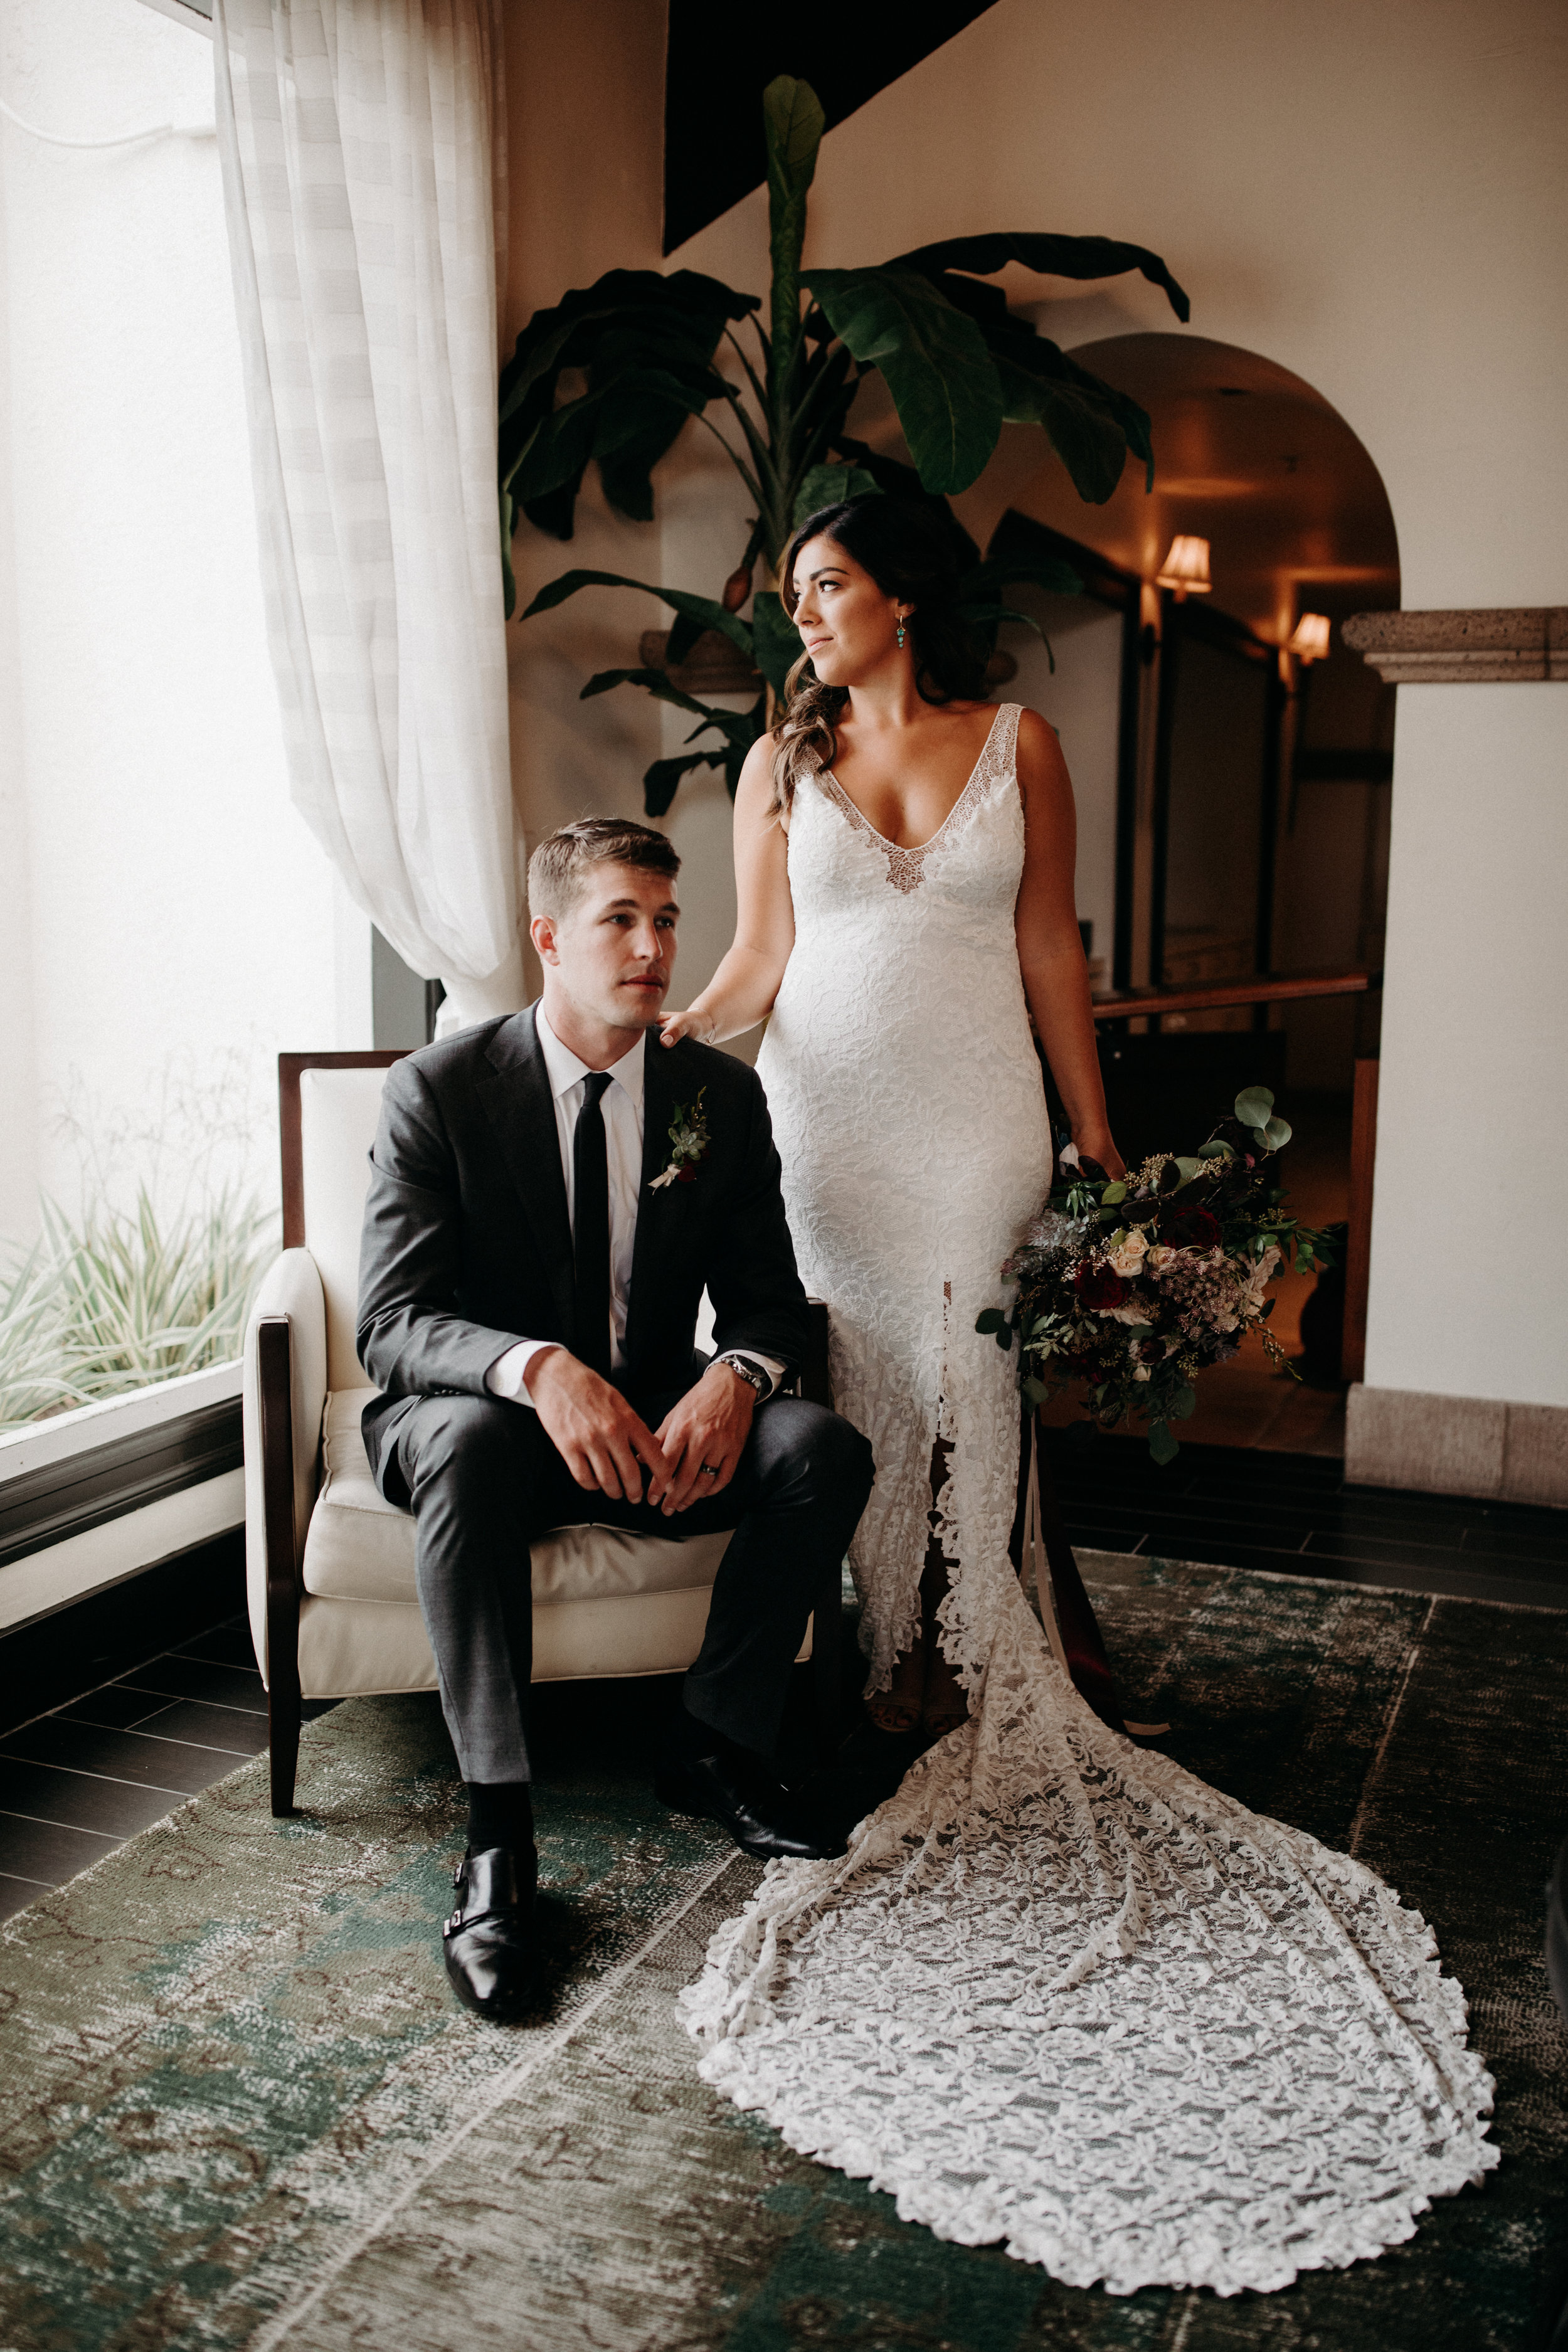 Lindsay + Kit - View Gallery